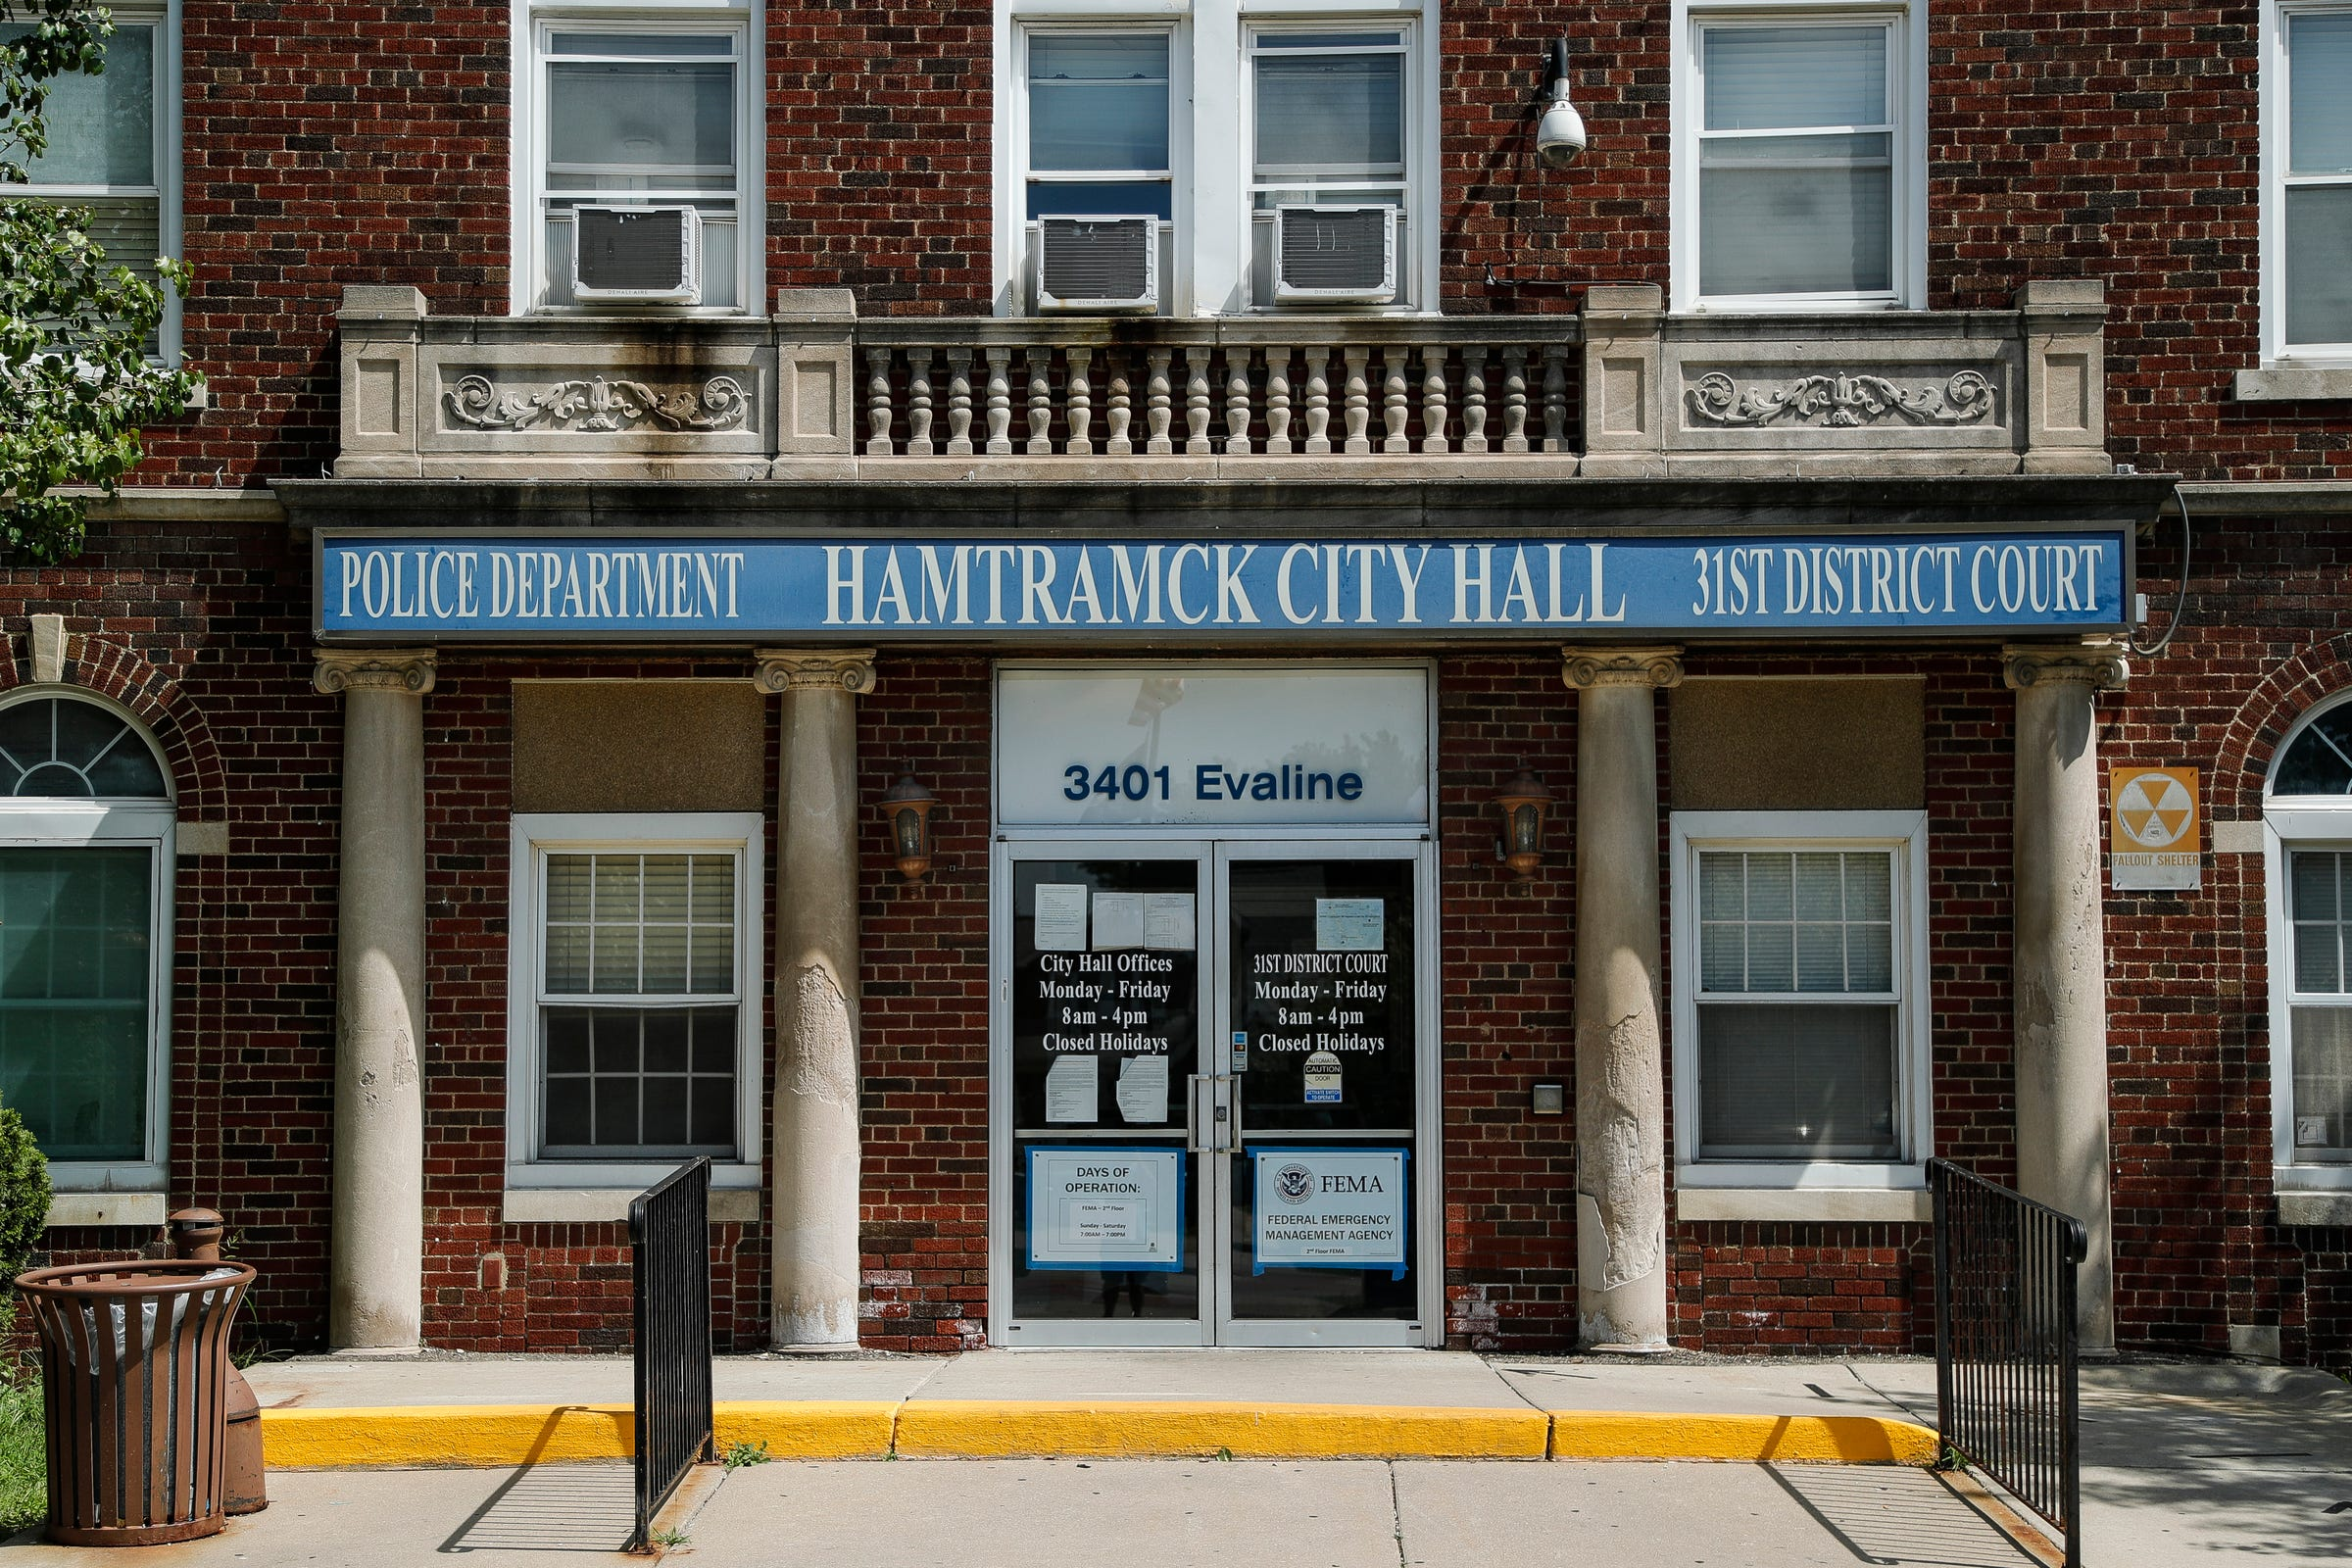 Lead found in Hamtramck water samples